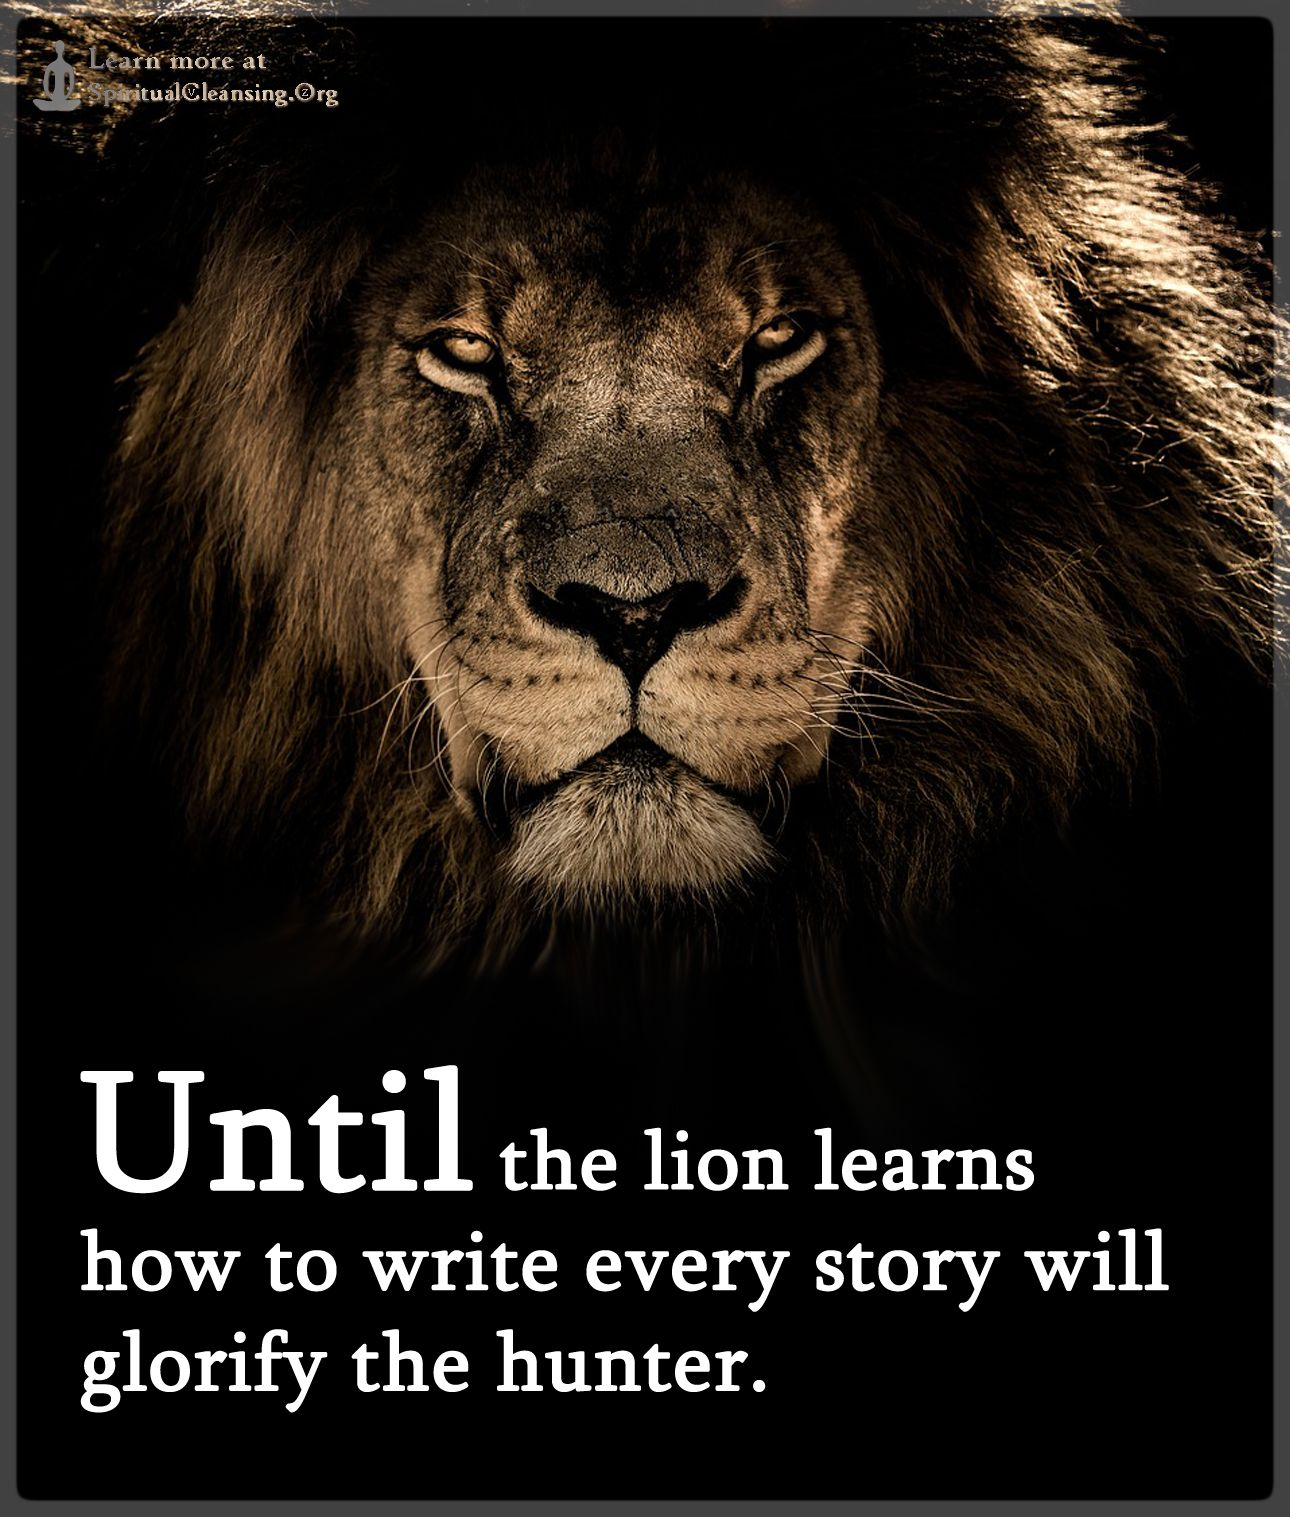 Lion learns how to write